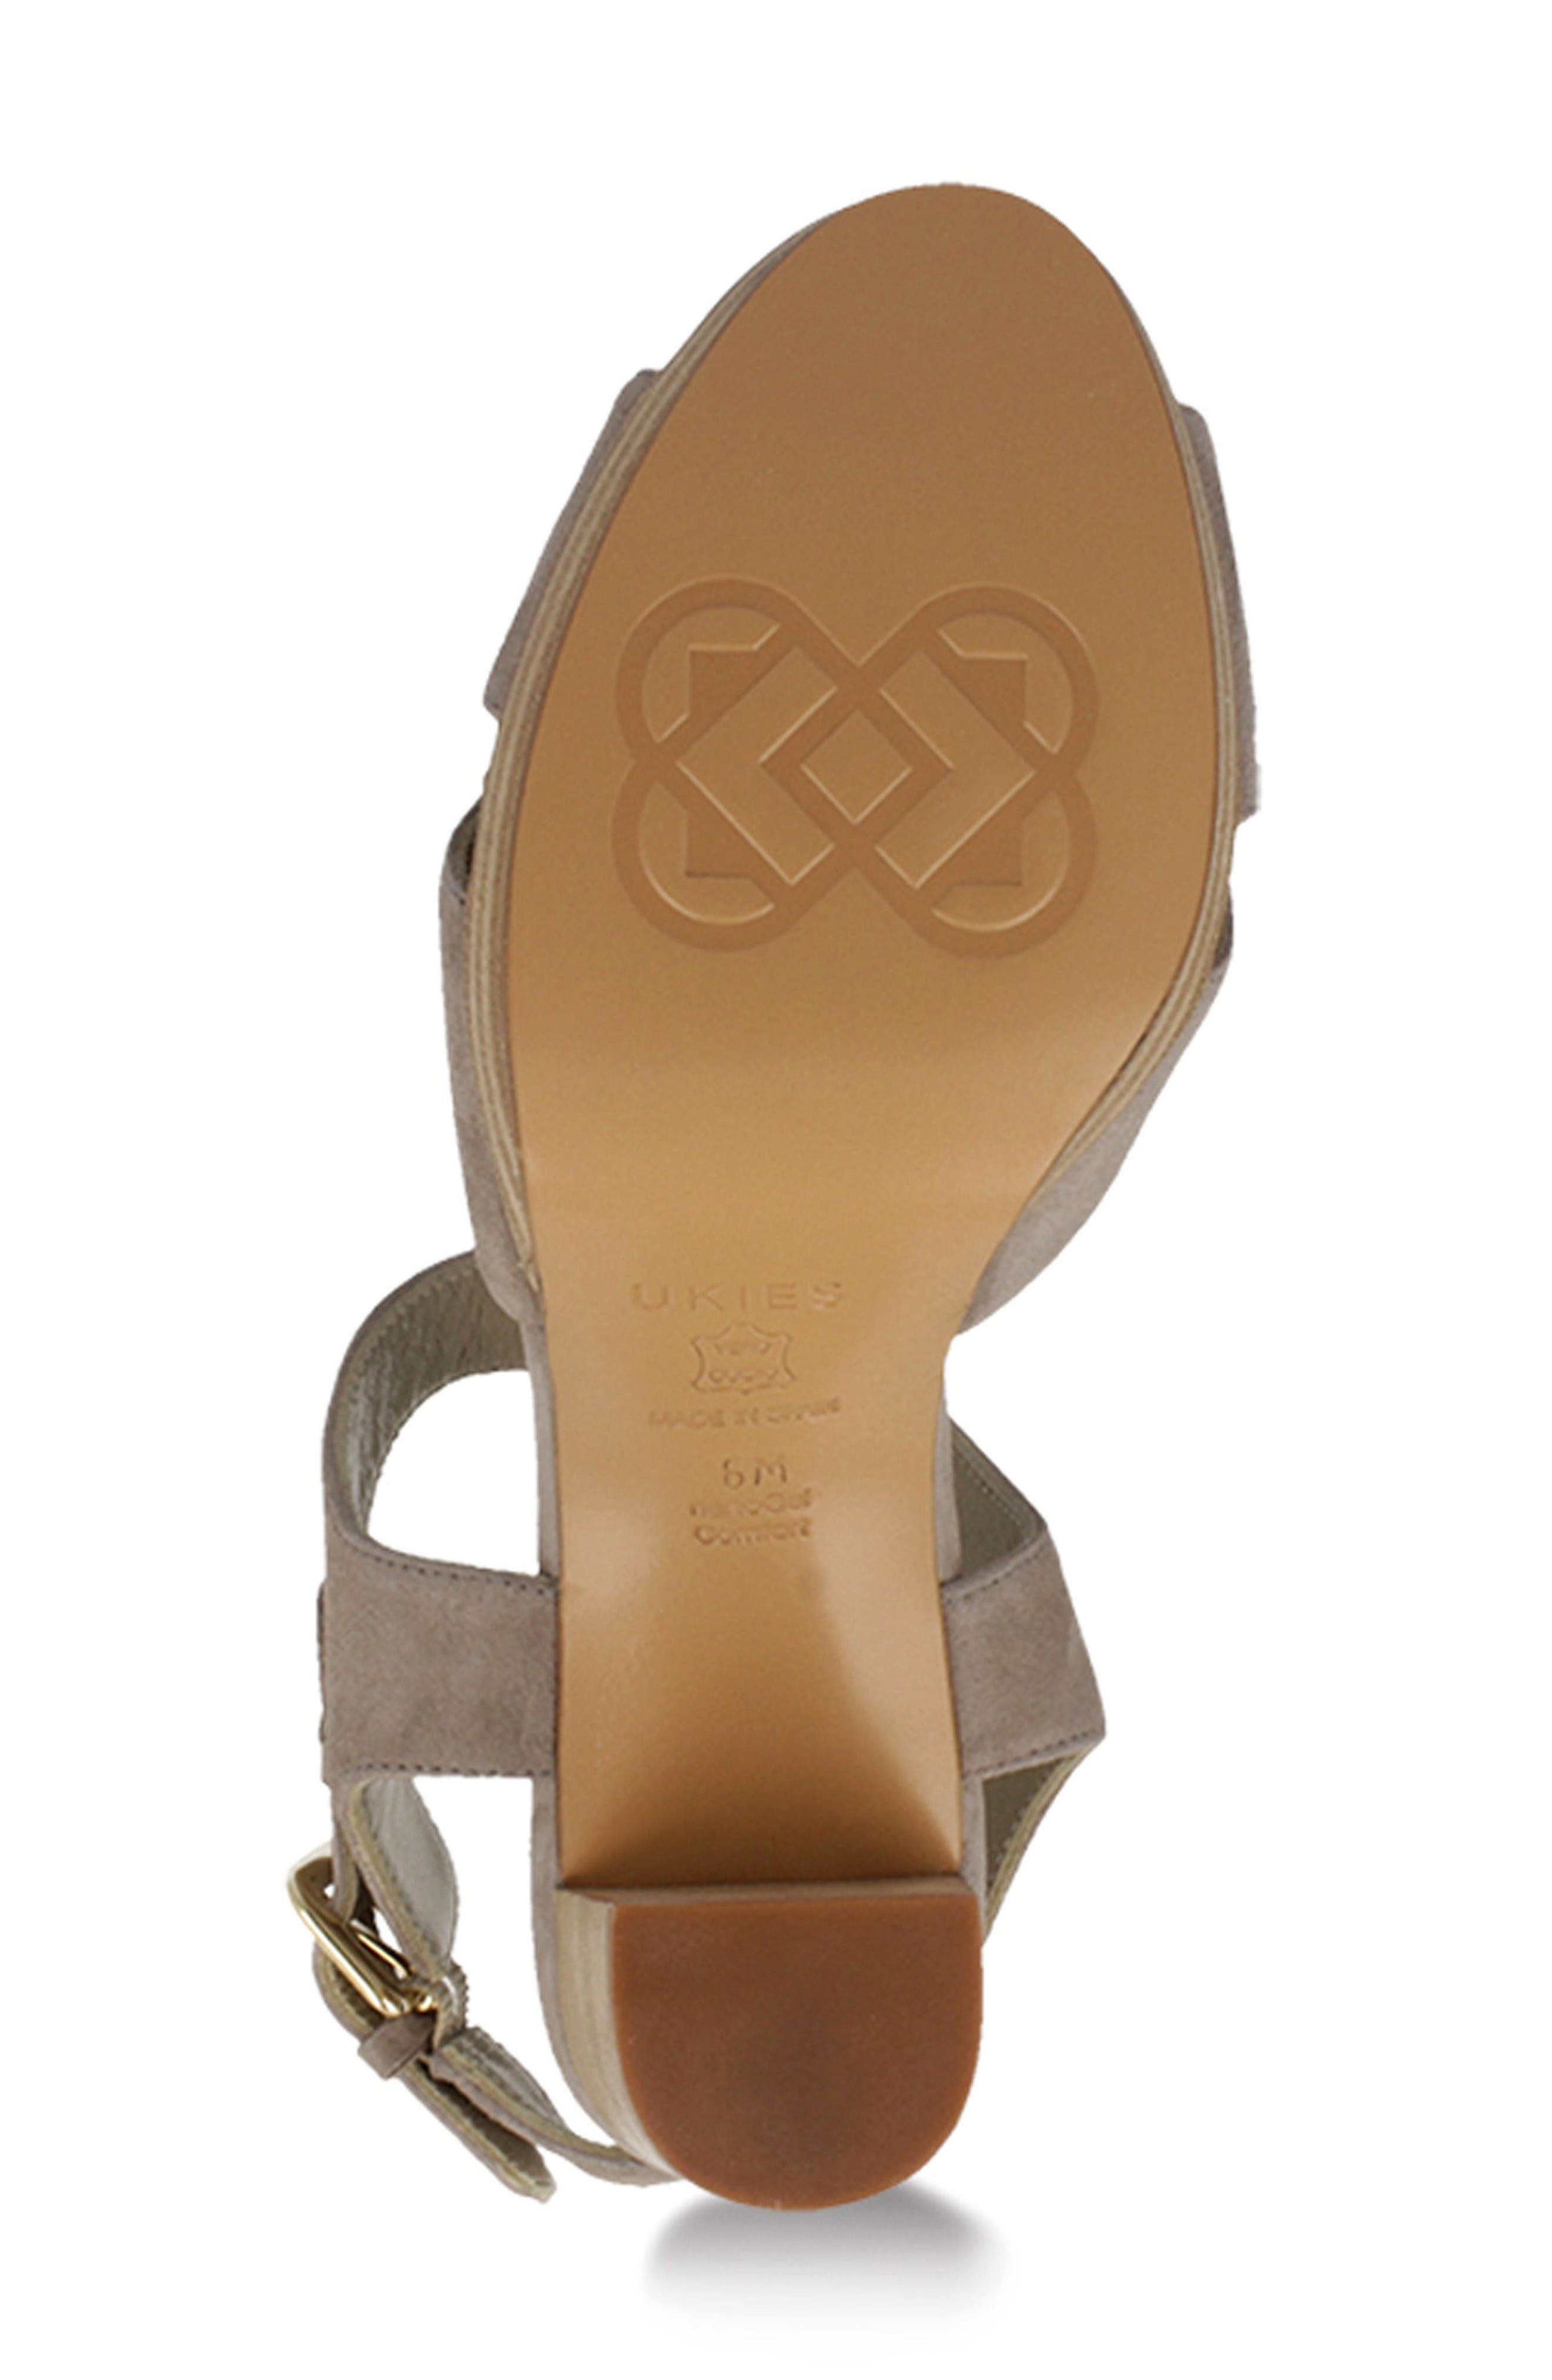 Tango Sandal,                             Alternate thumbnail 4, color,                             Taupe Suede